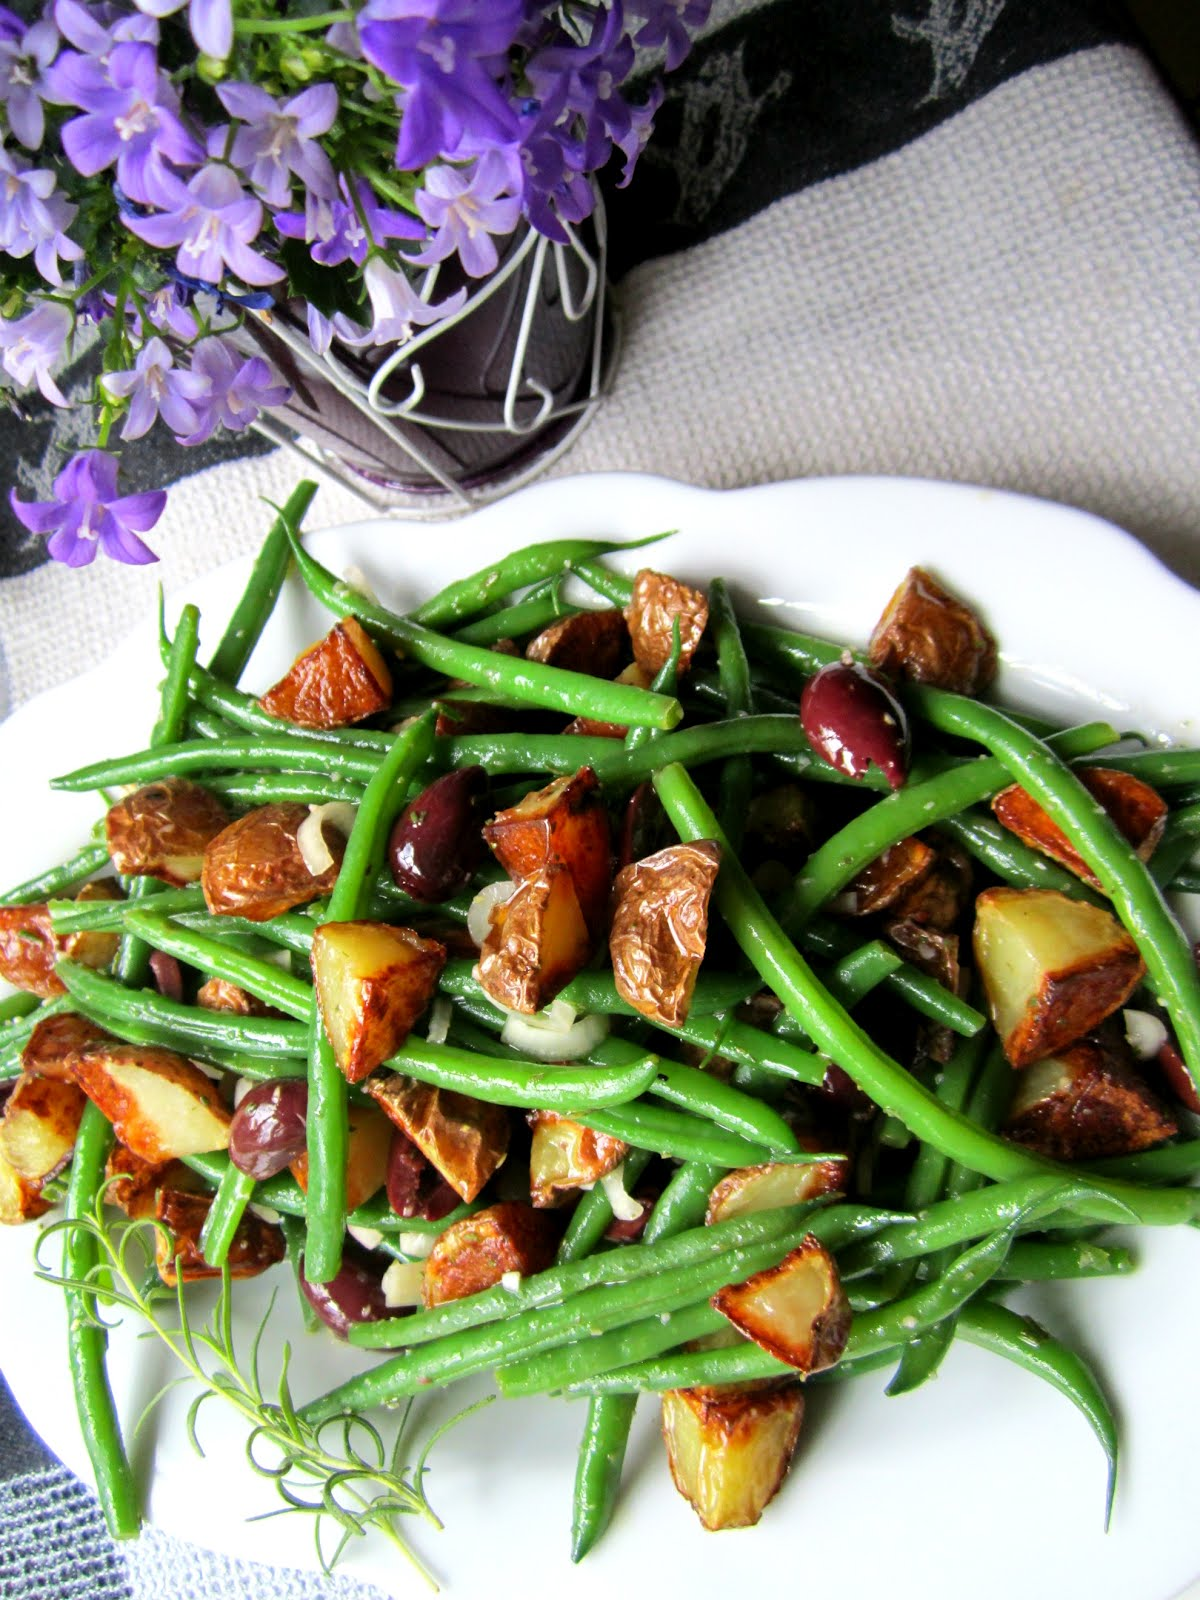 ... Delicious: Roasted Potato & Green Bean Salad w/ Rosemary Vinaigrette